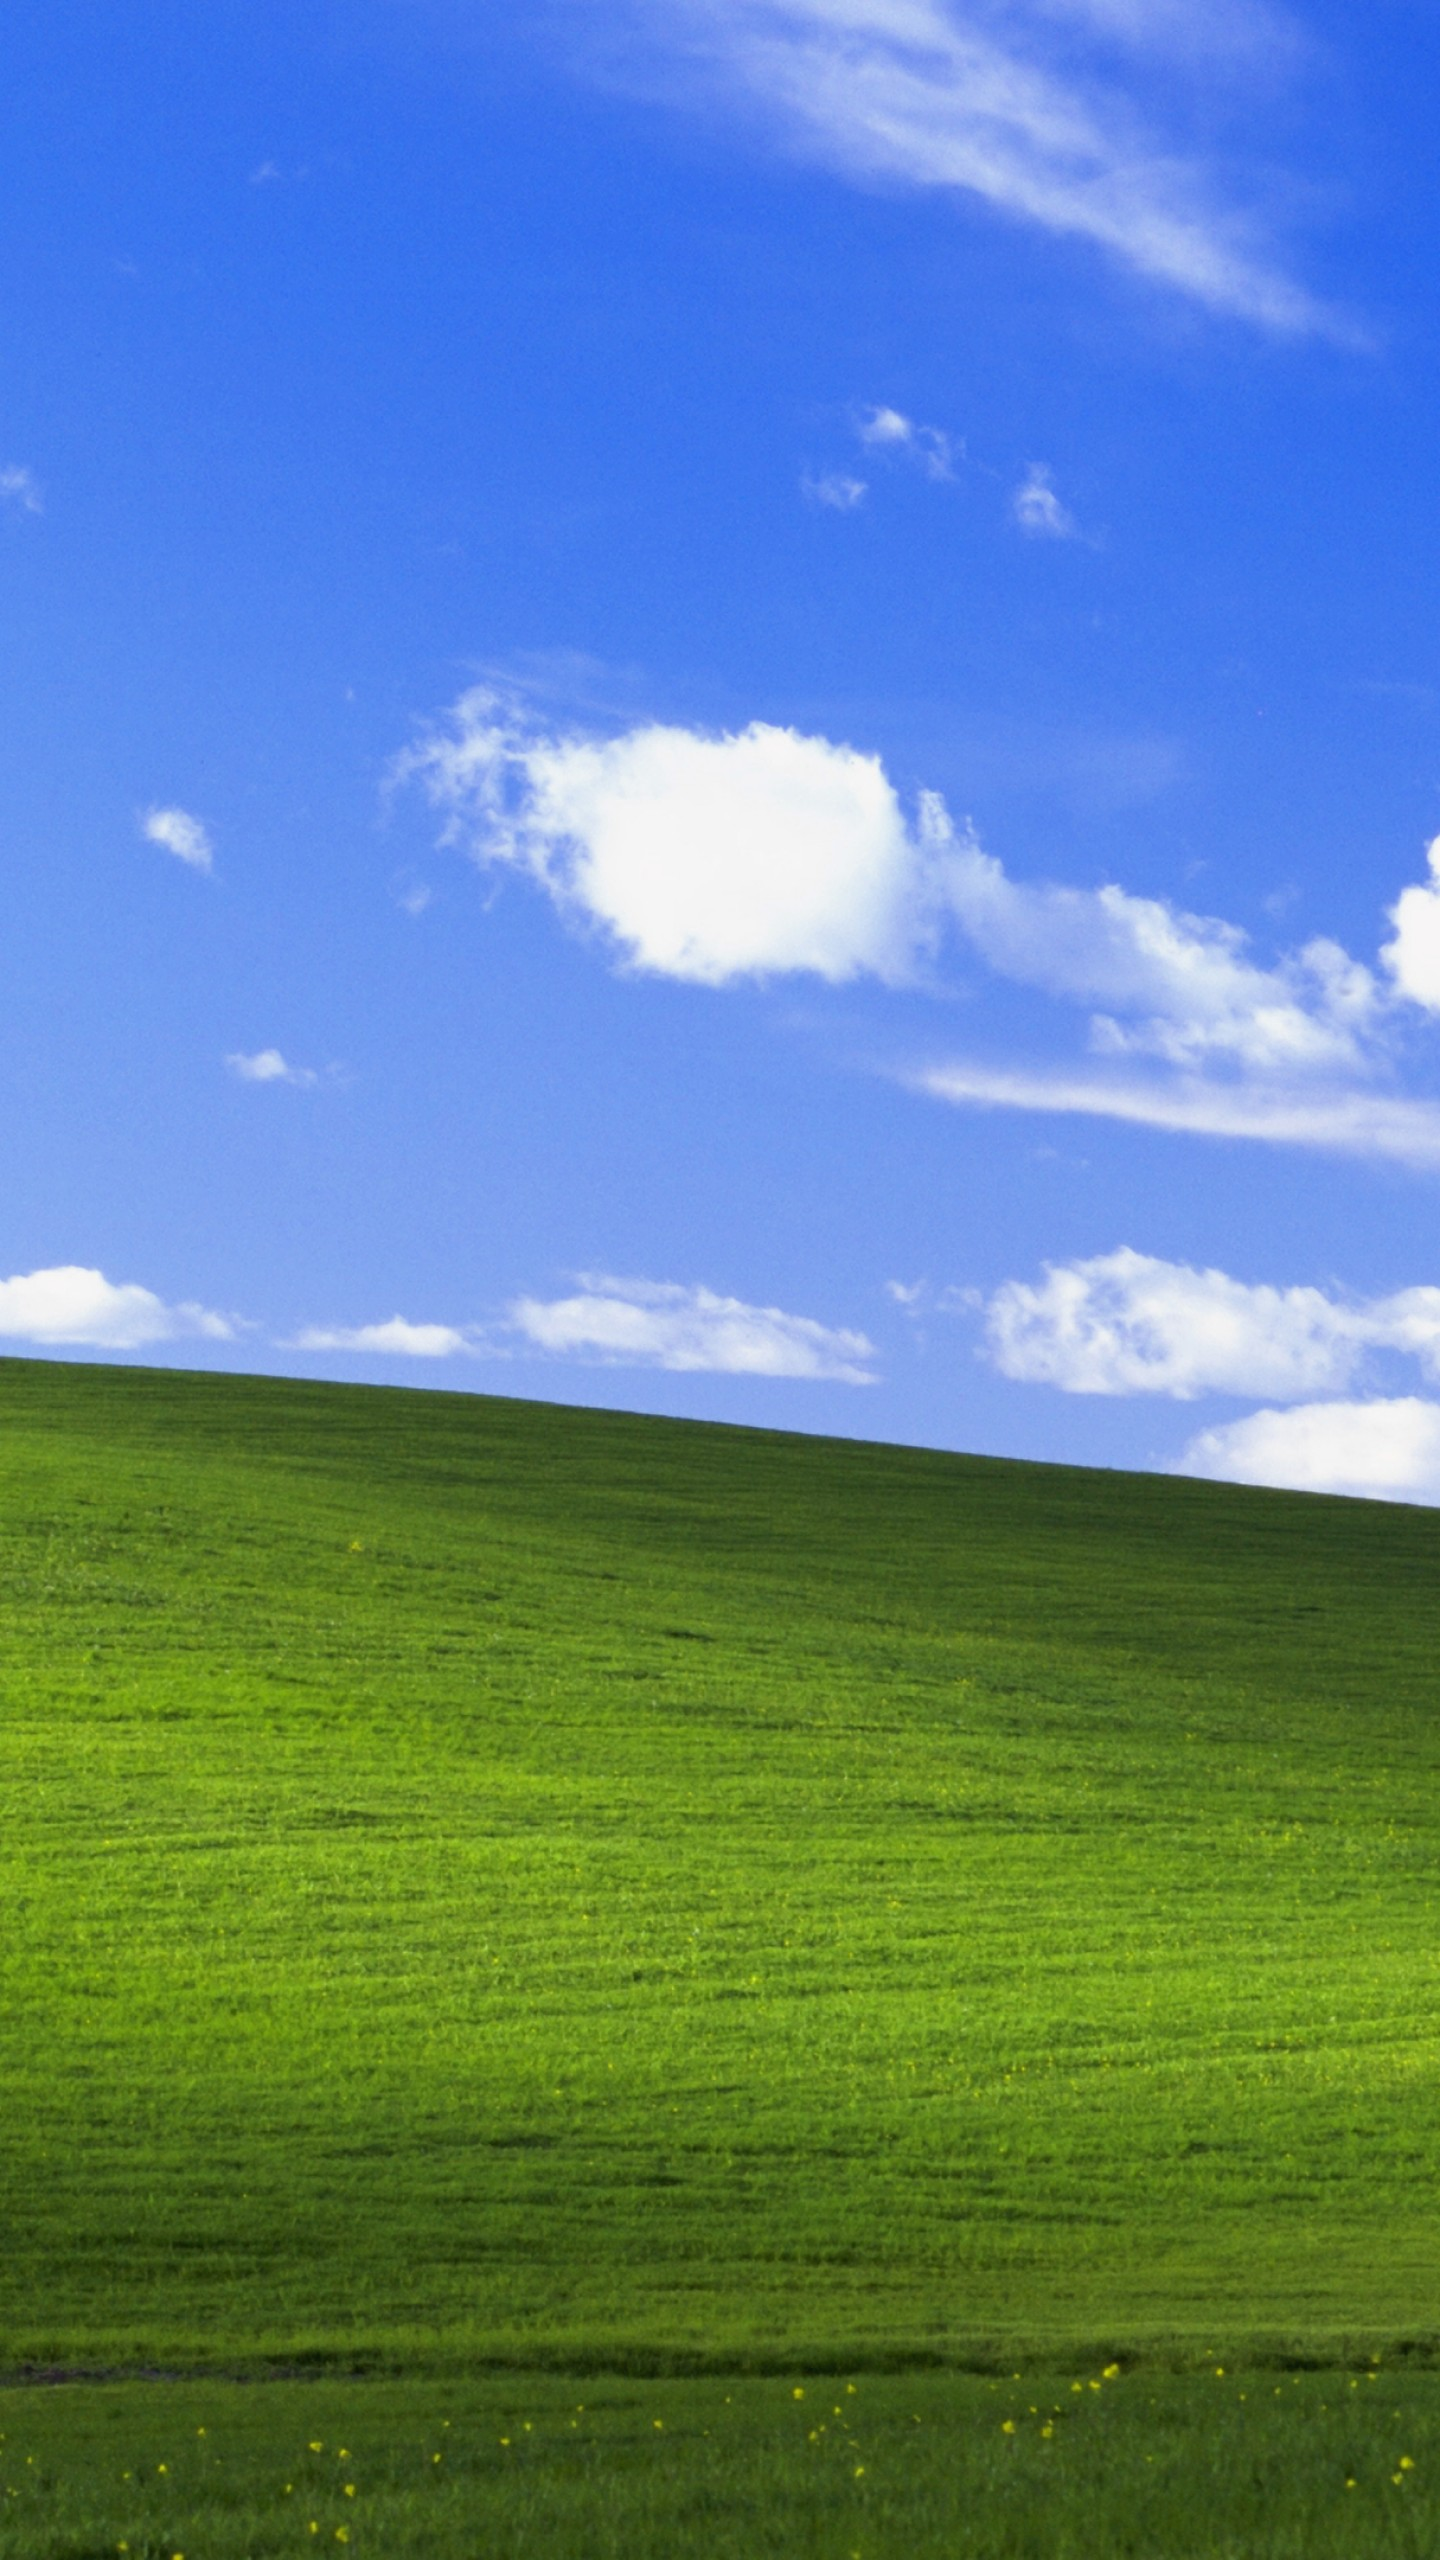 Windows Xp Default Wallpaper Black Posted By Zoey Simpson